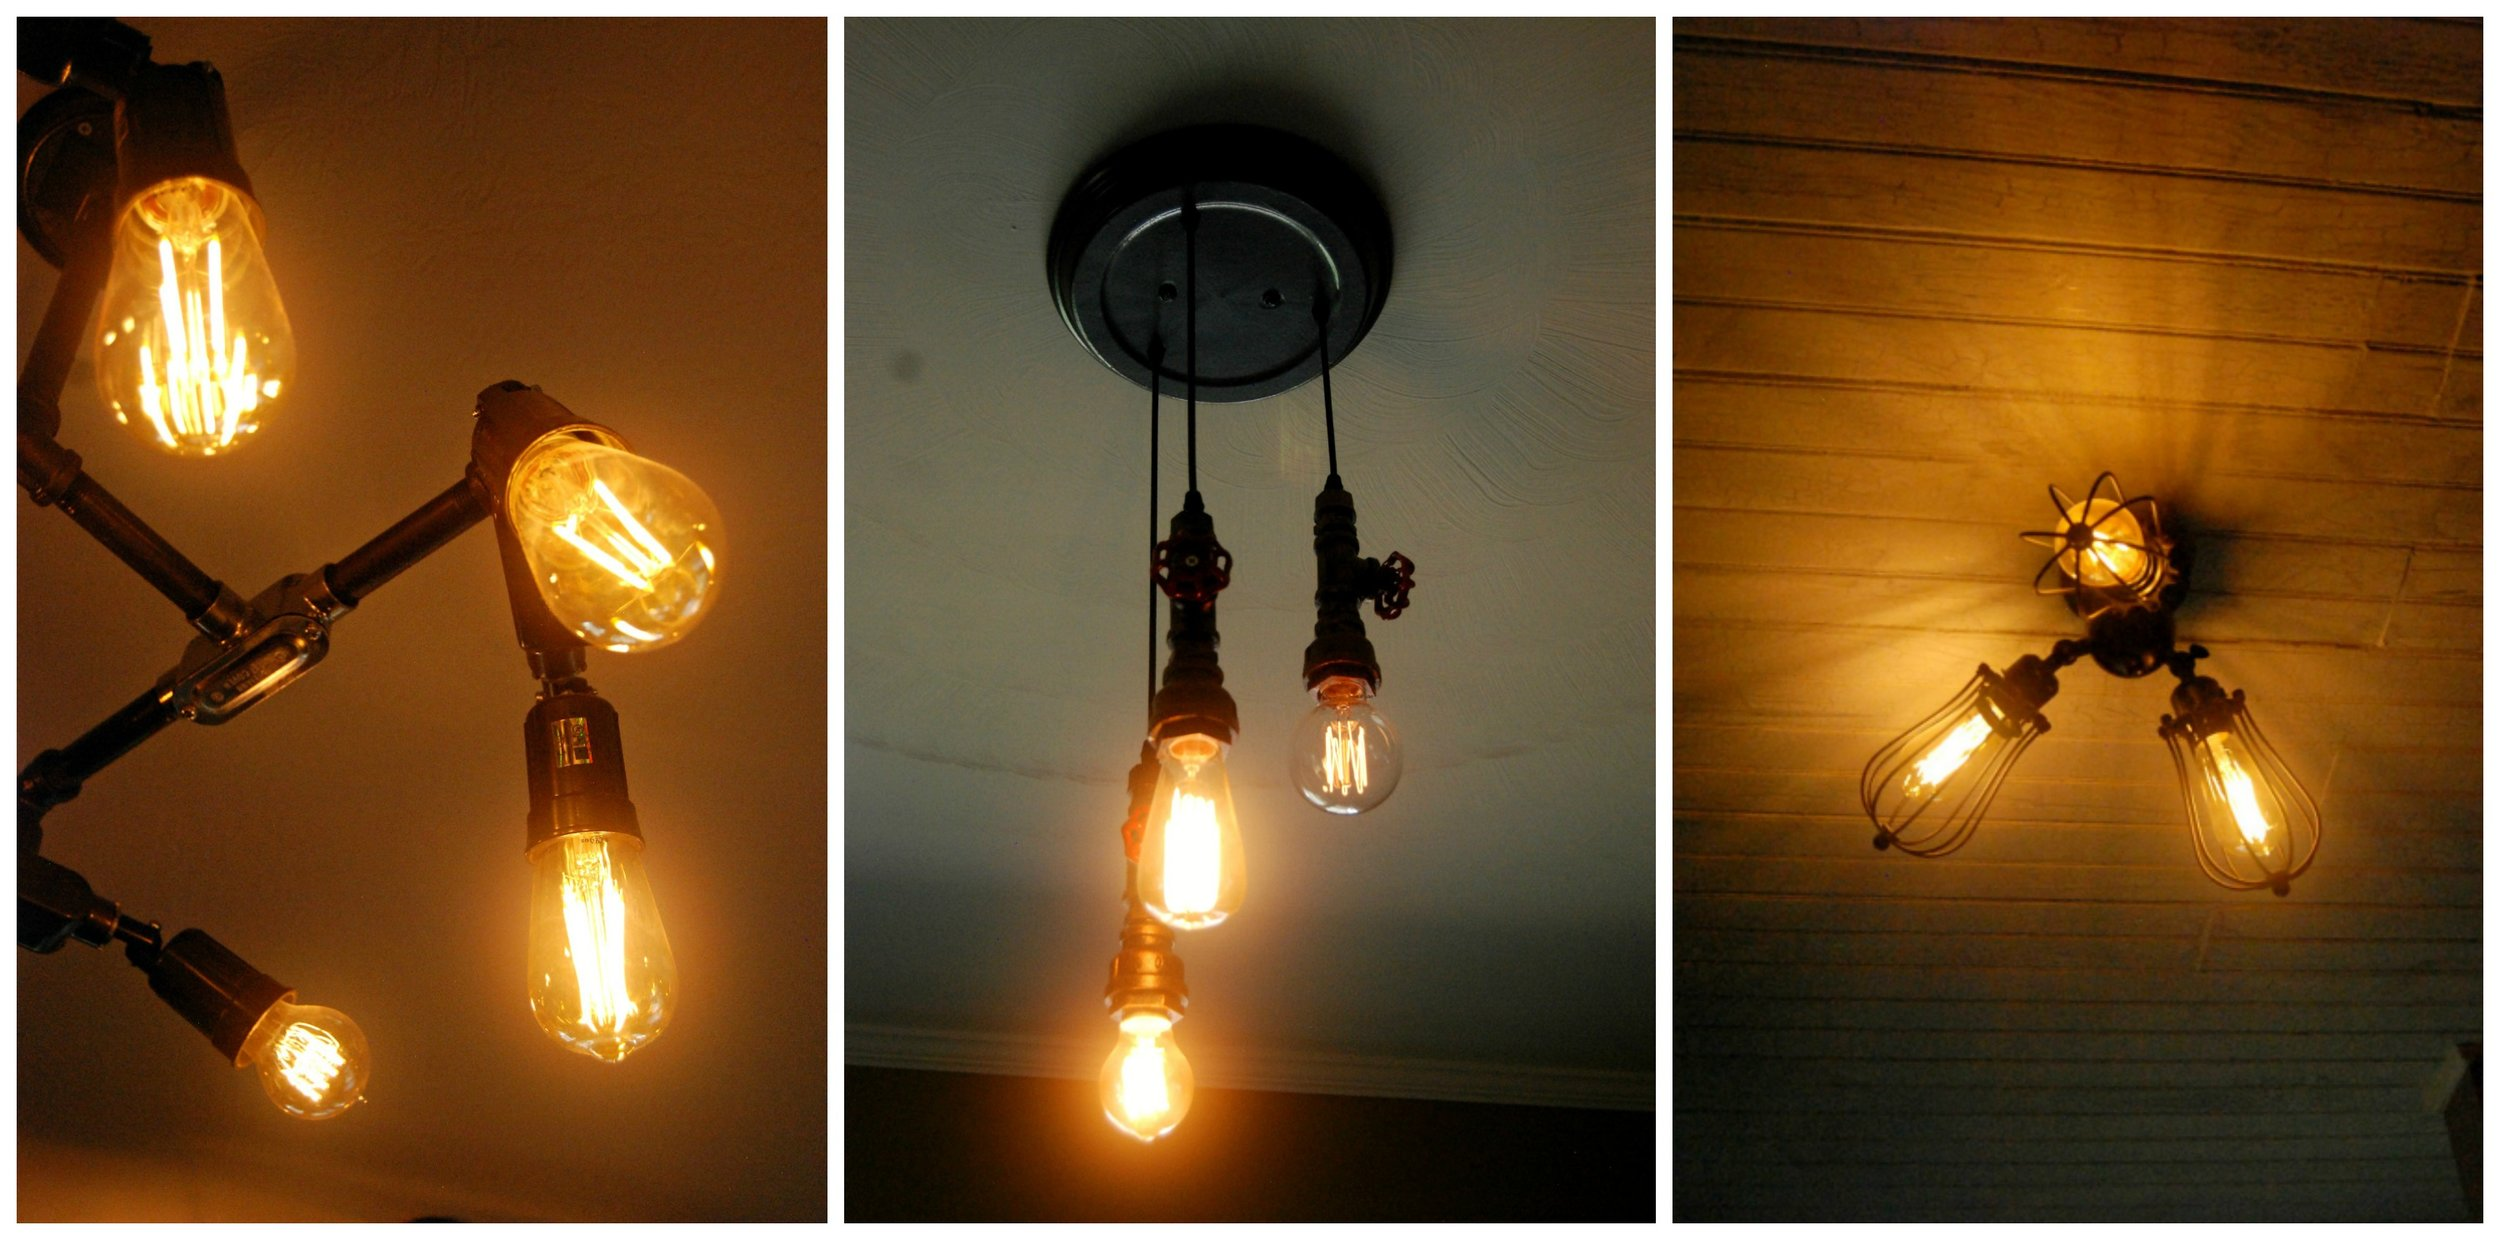 Just a few of the lighting features around the office.